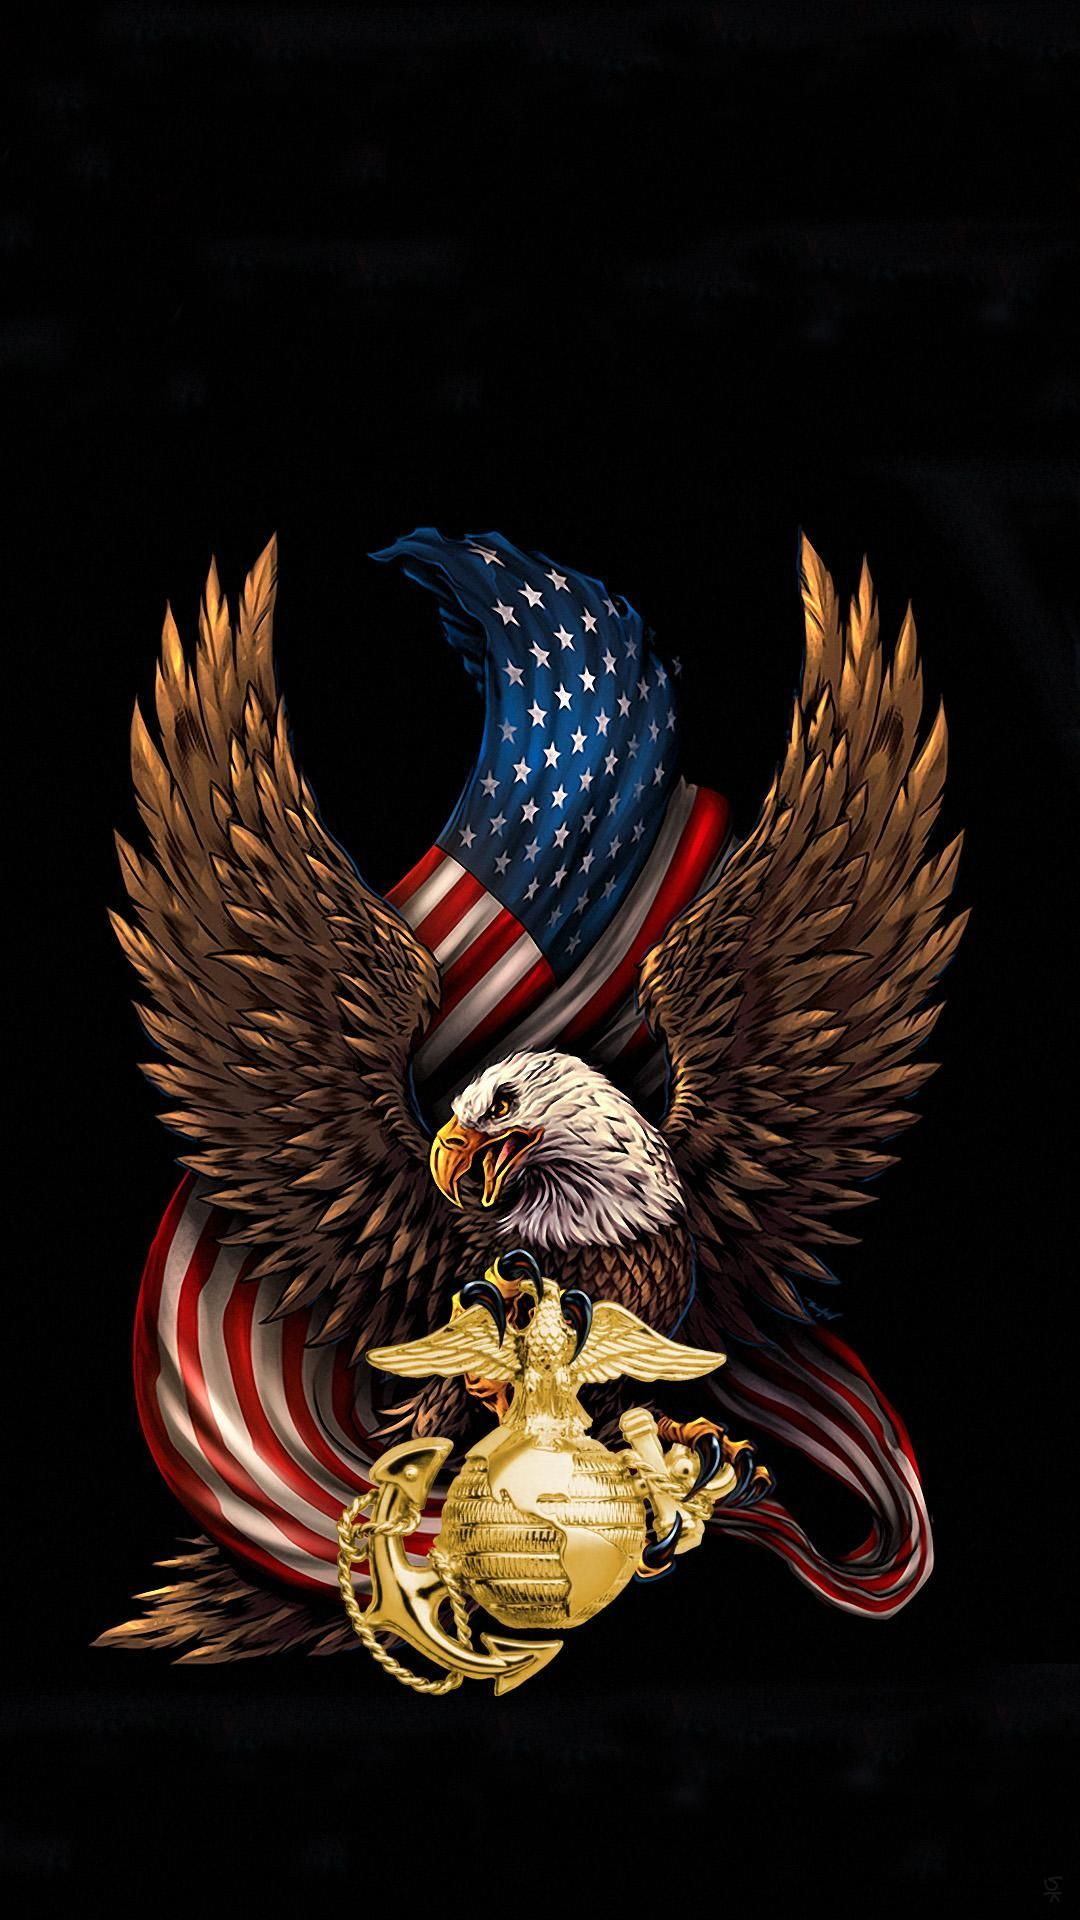 Eagle Iphone Wallpaper Usmc Wallpaper Navy Seal Wallpaper Anime Wallpaper Iphone